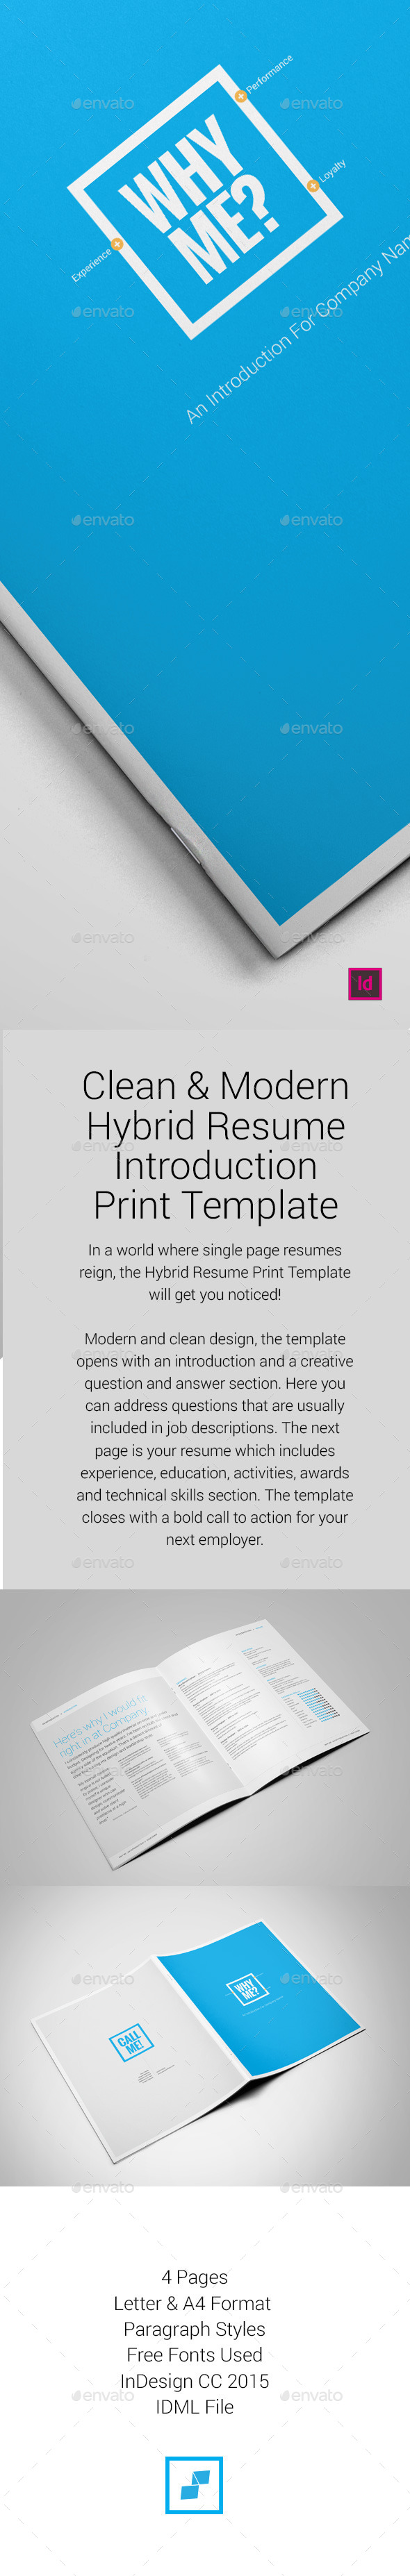 Hybrid Resume Print Template - Resumes Stationery